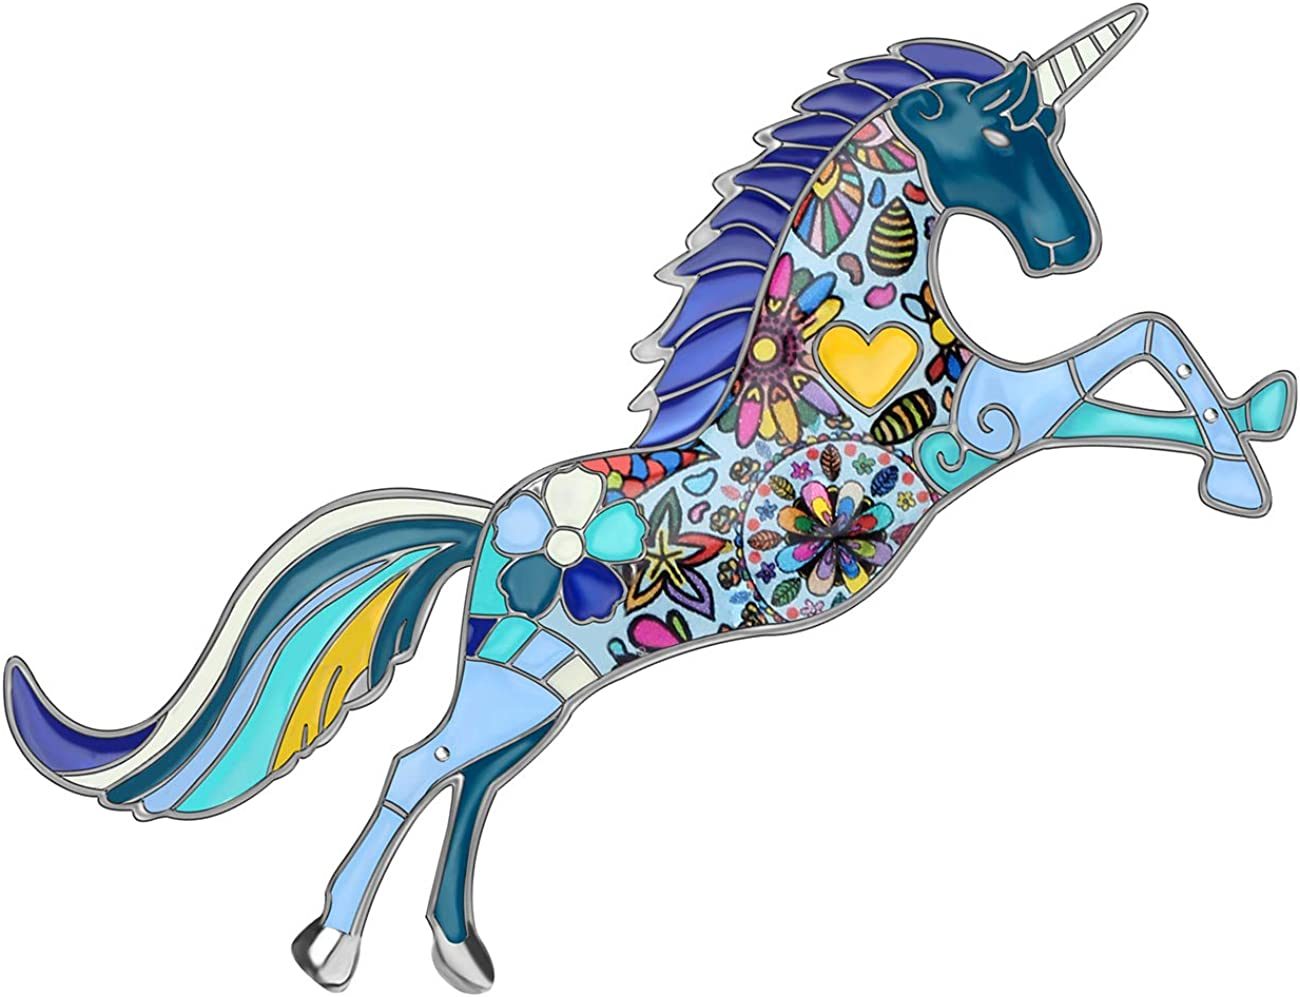 NEWEI Enamel Alloy Cut Colorful Unicorn Brooch Pin Fashion Animal Jewlery for Women Girls Gift Clothes Charms